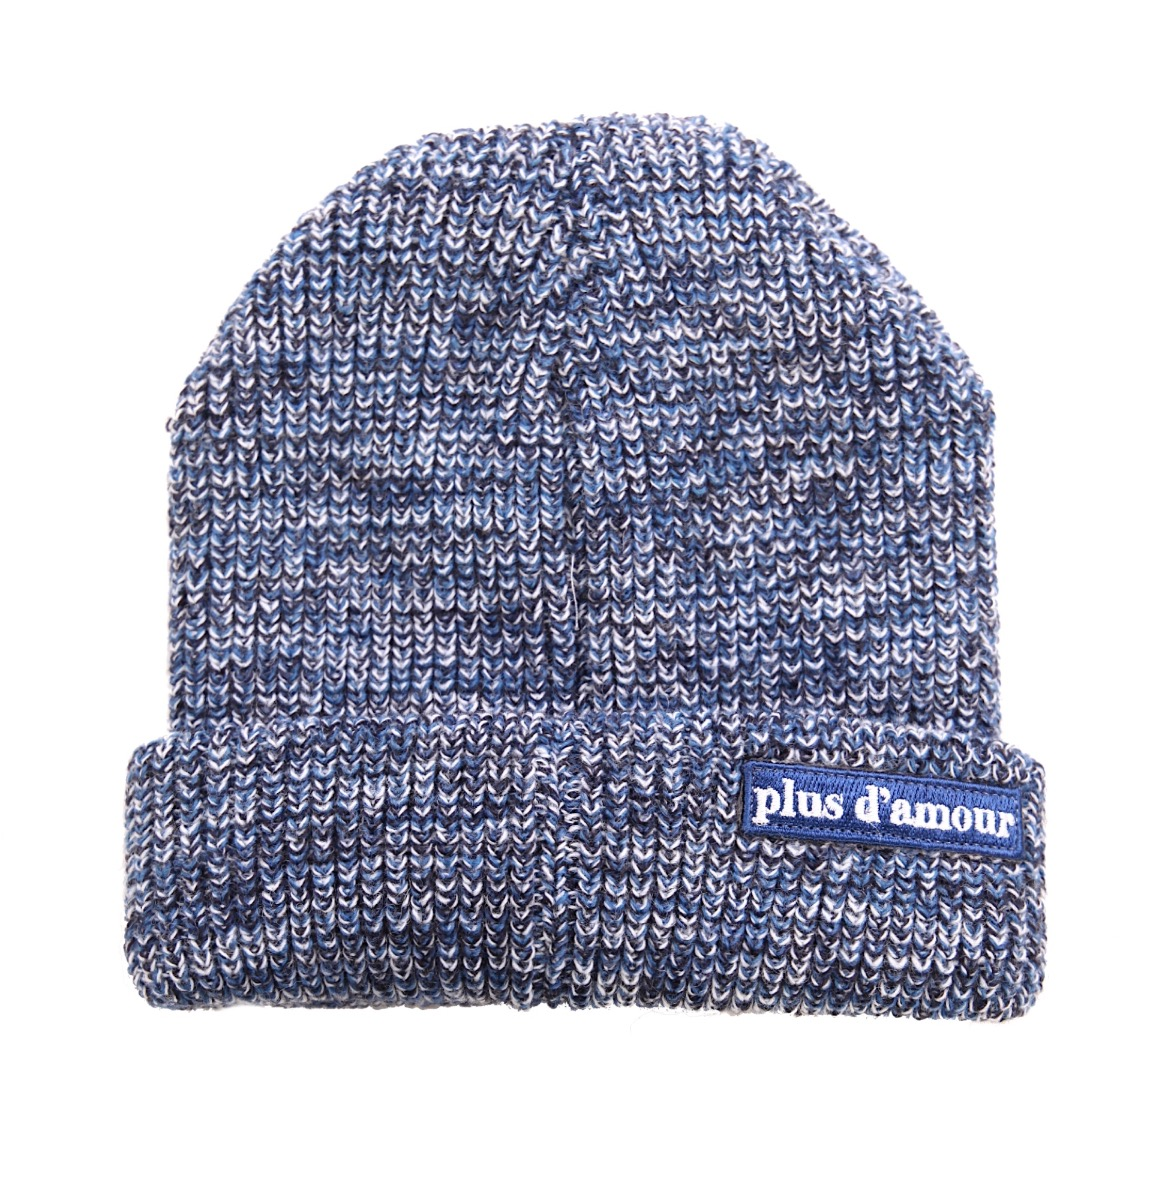 HommeBeanie Bleu French Plus D'amour Marine Kick Hat 6mIgyYvf7b